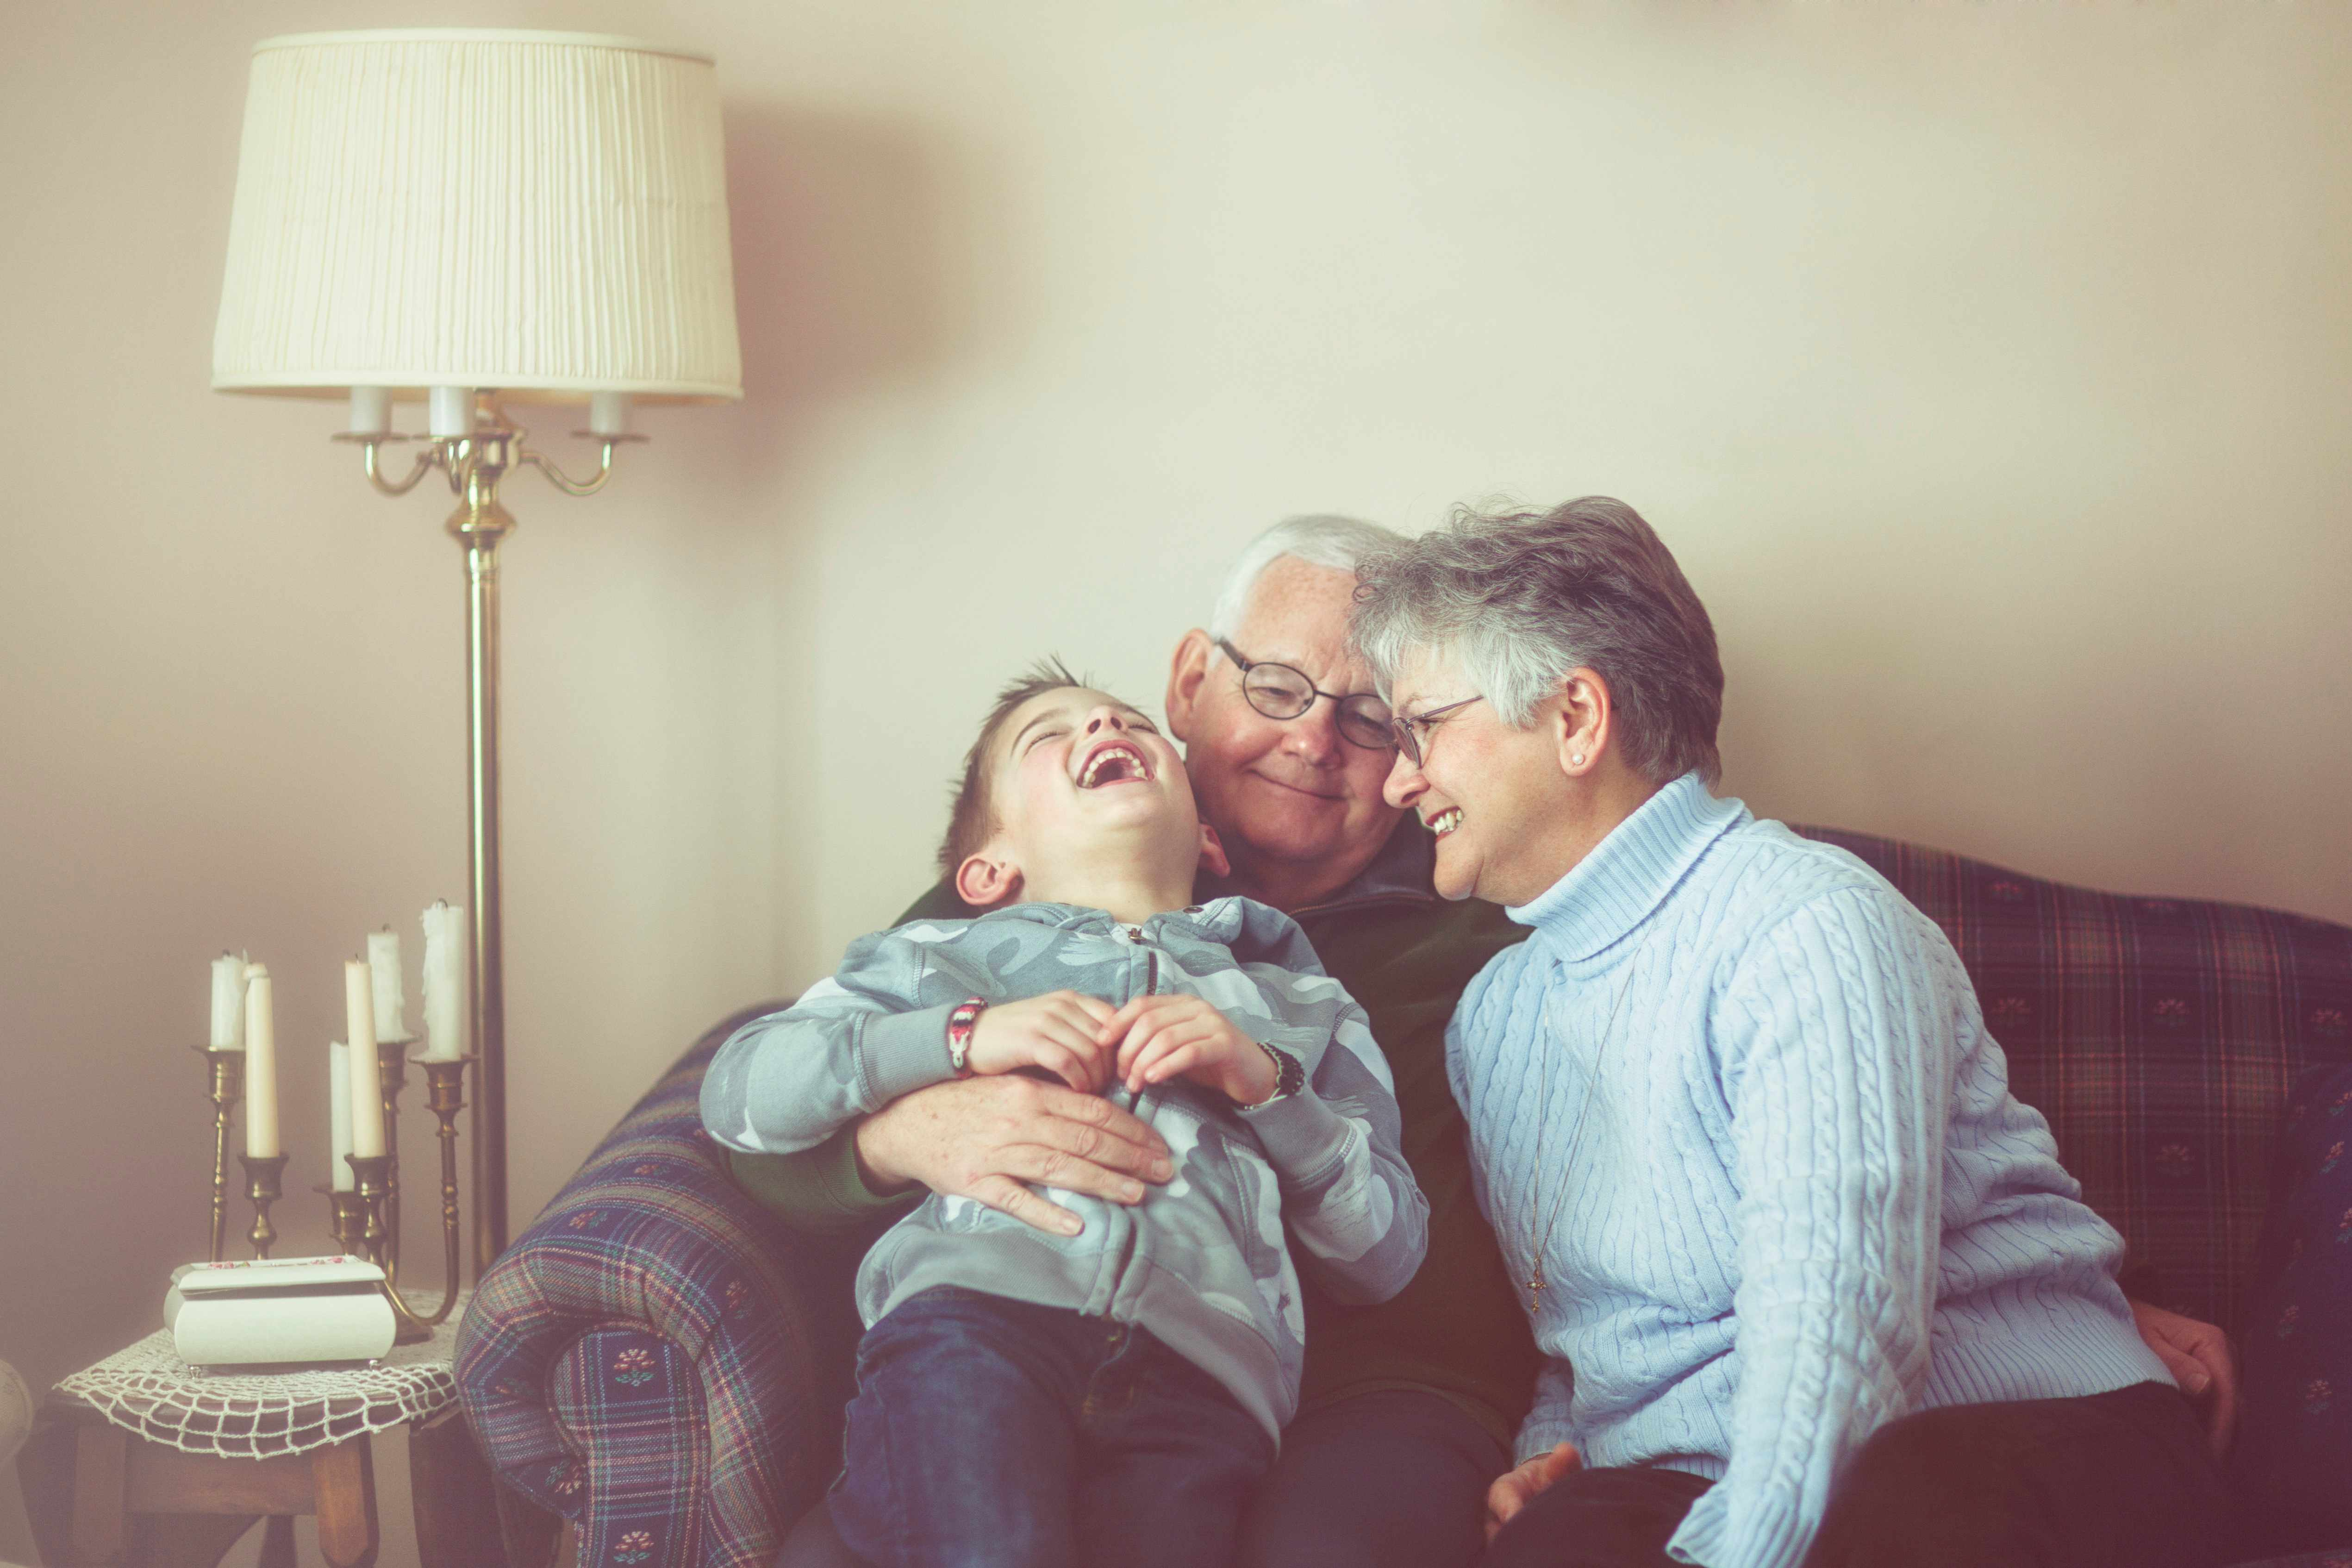 Grandmother, grandfather and grandson laughing together.